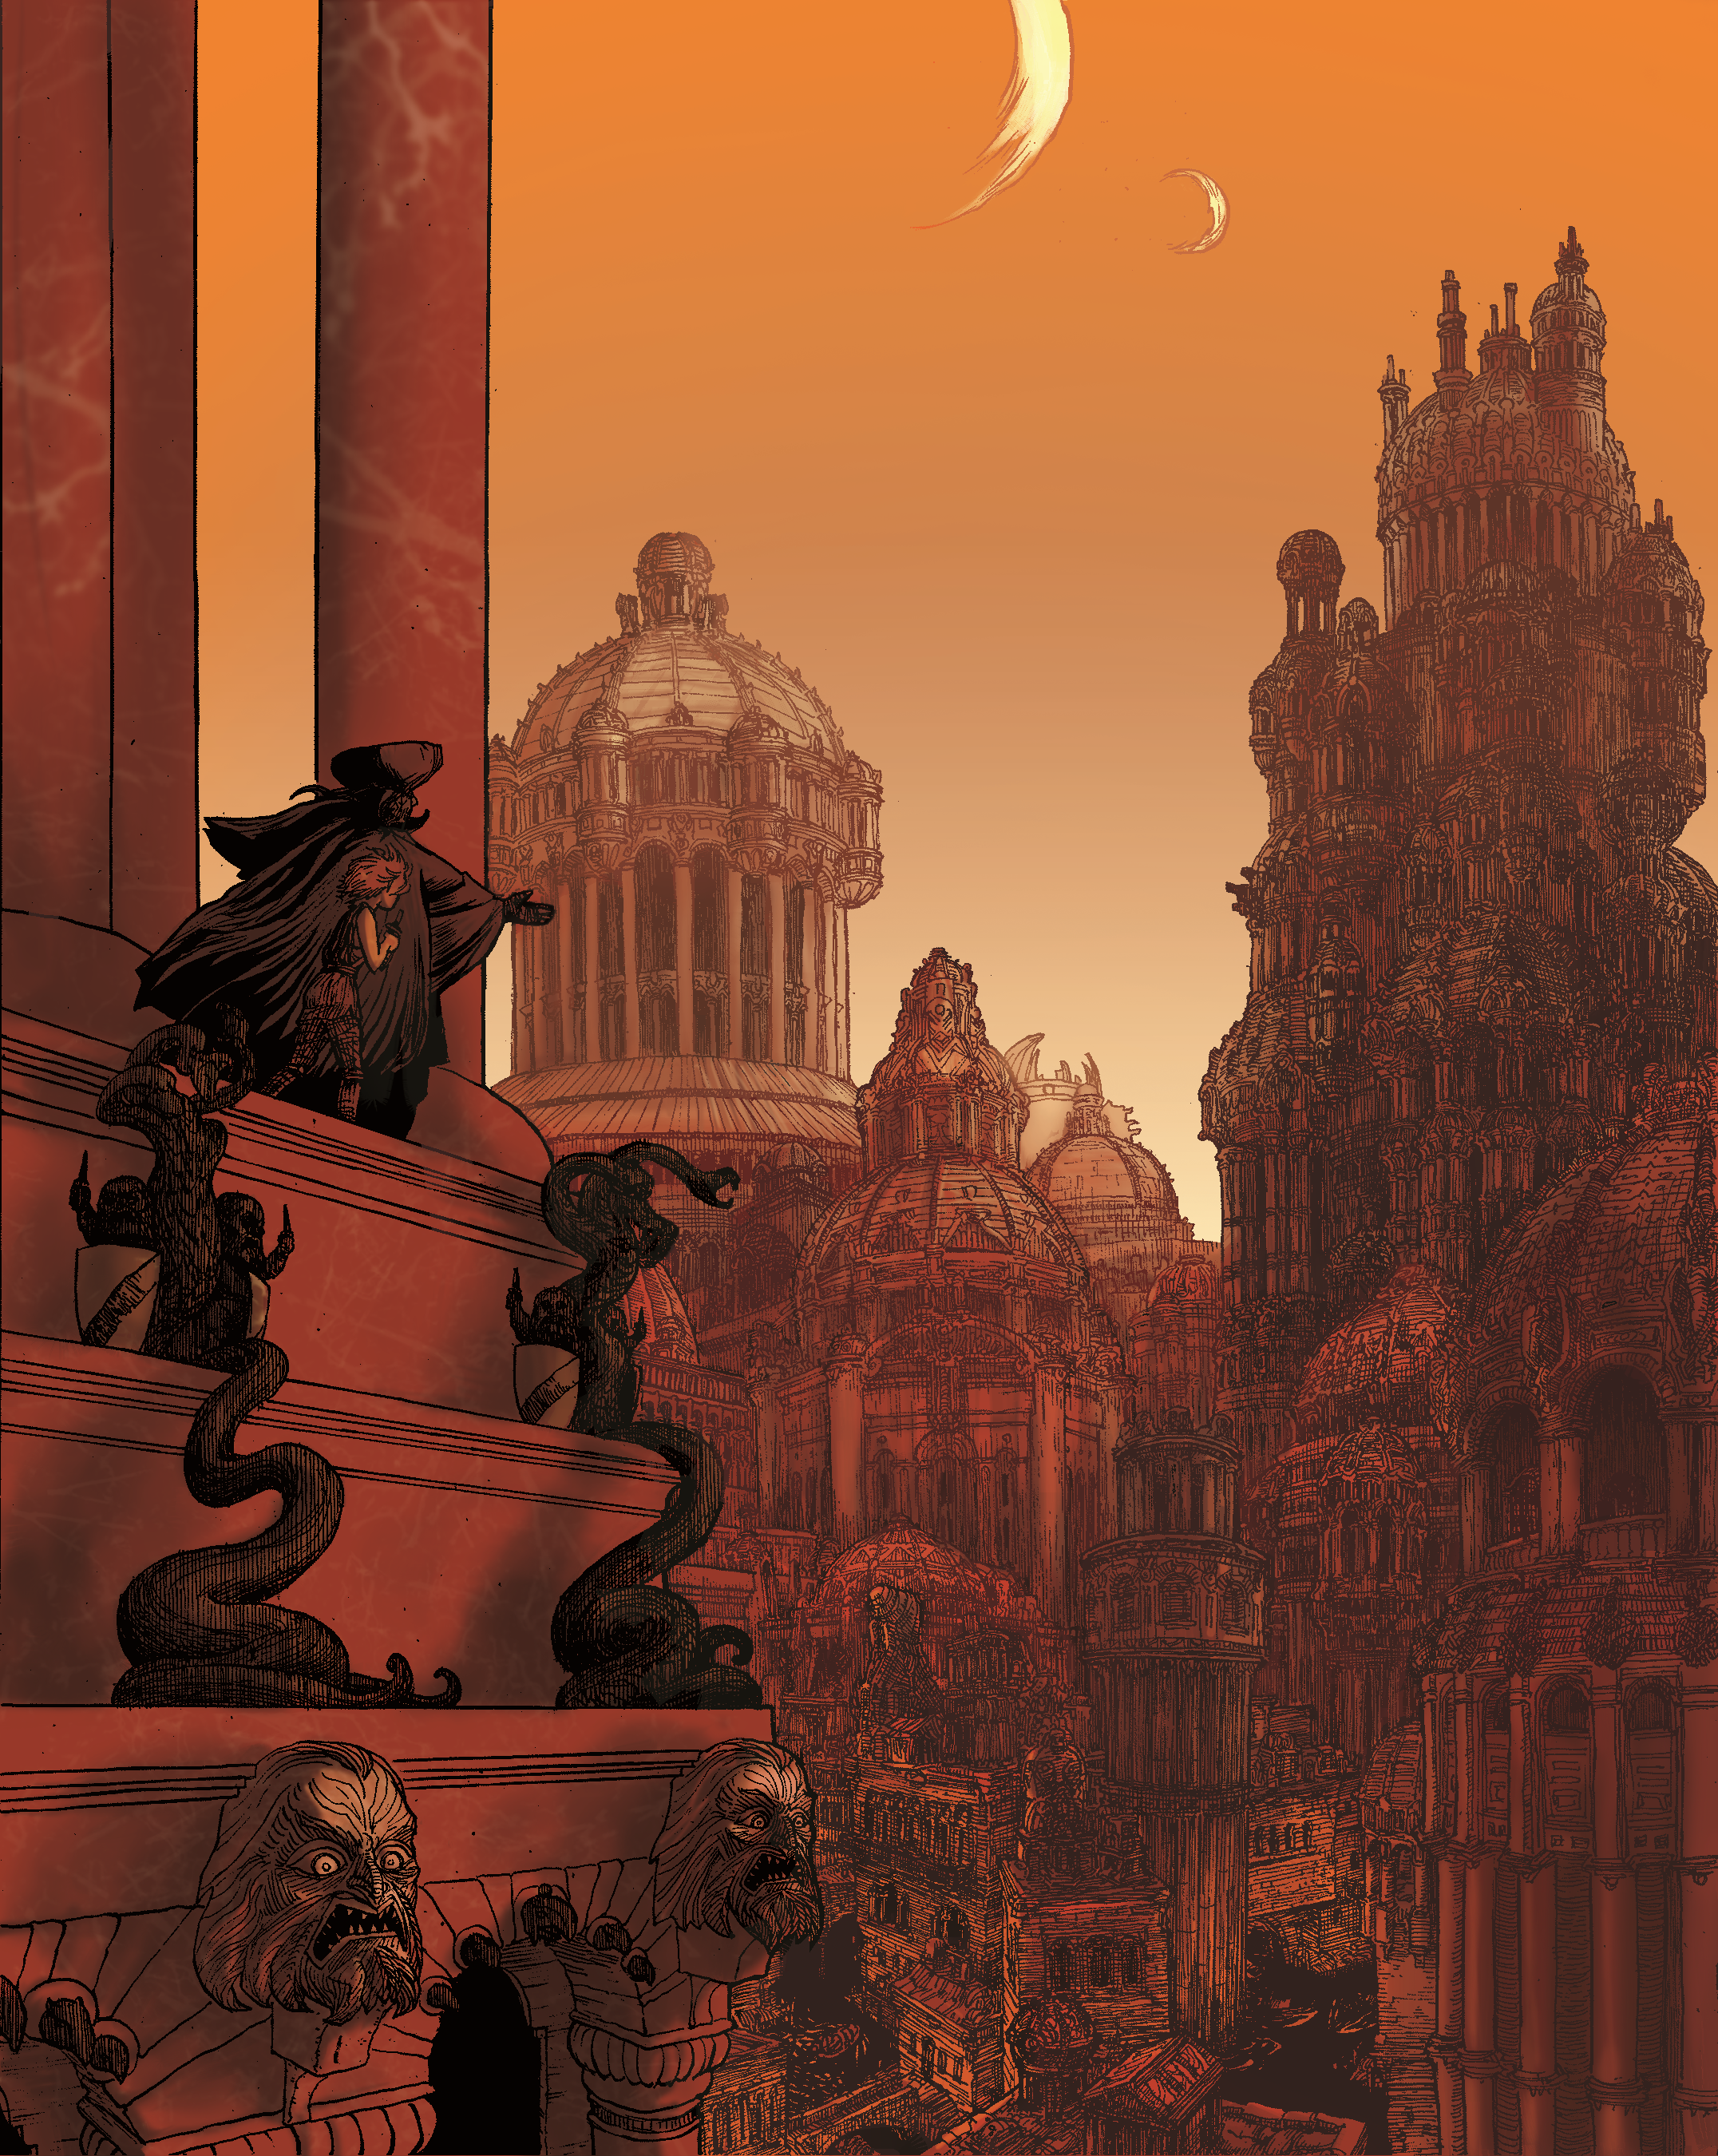 Illustration of the city of Vance, by Chris Huth